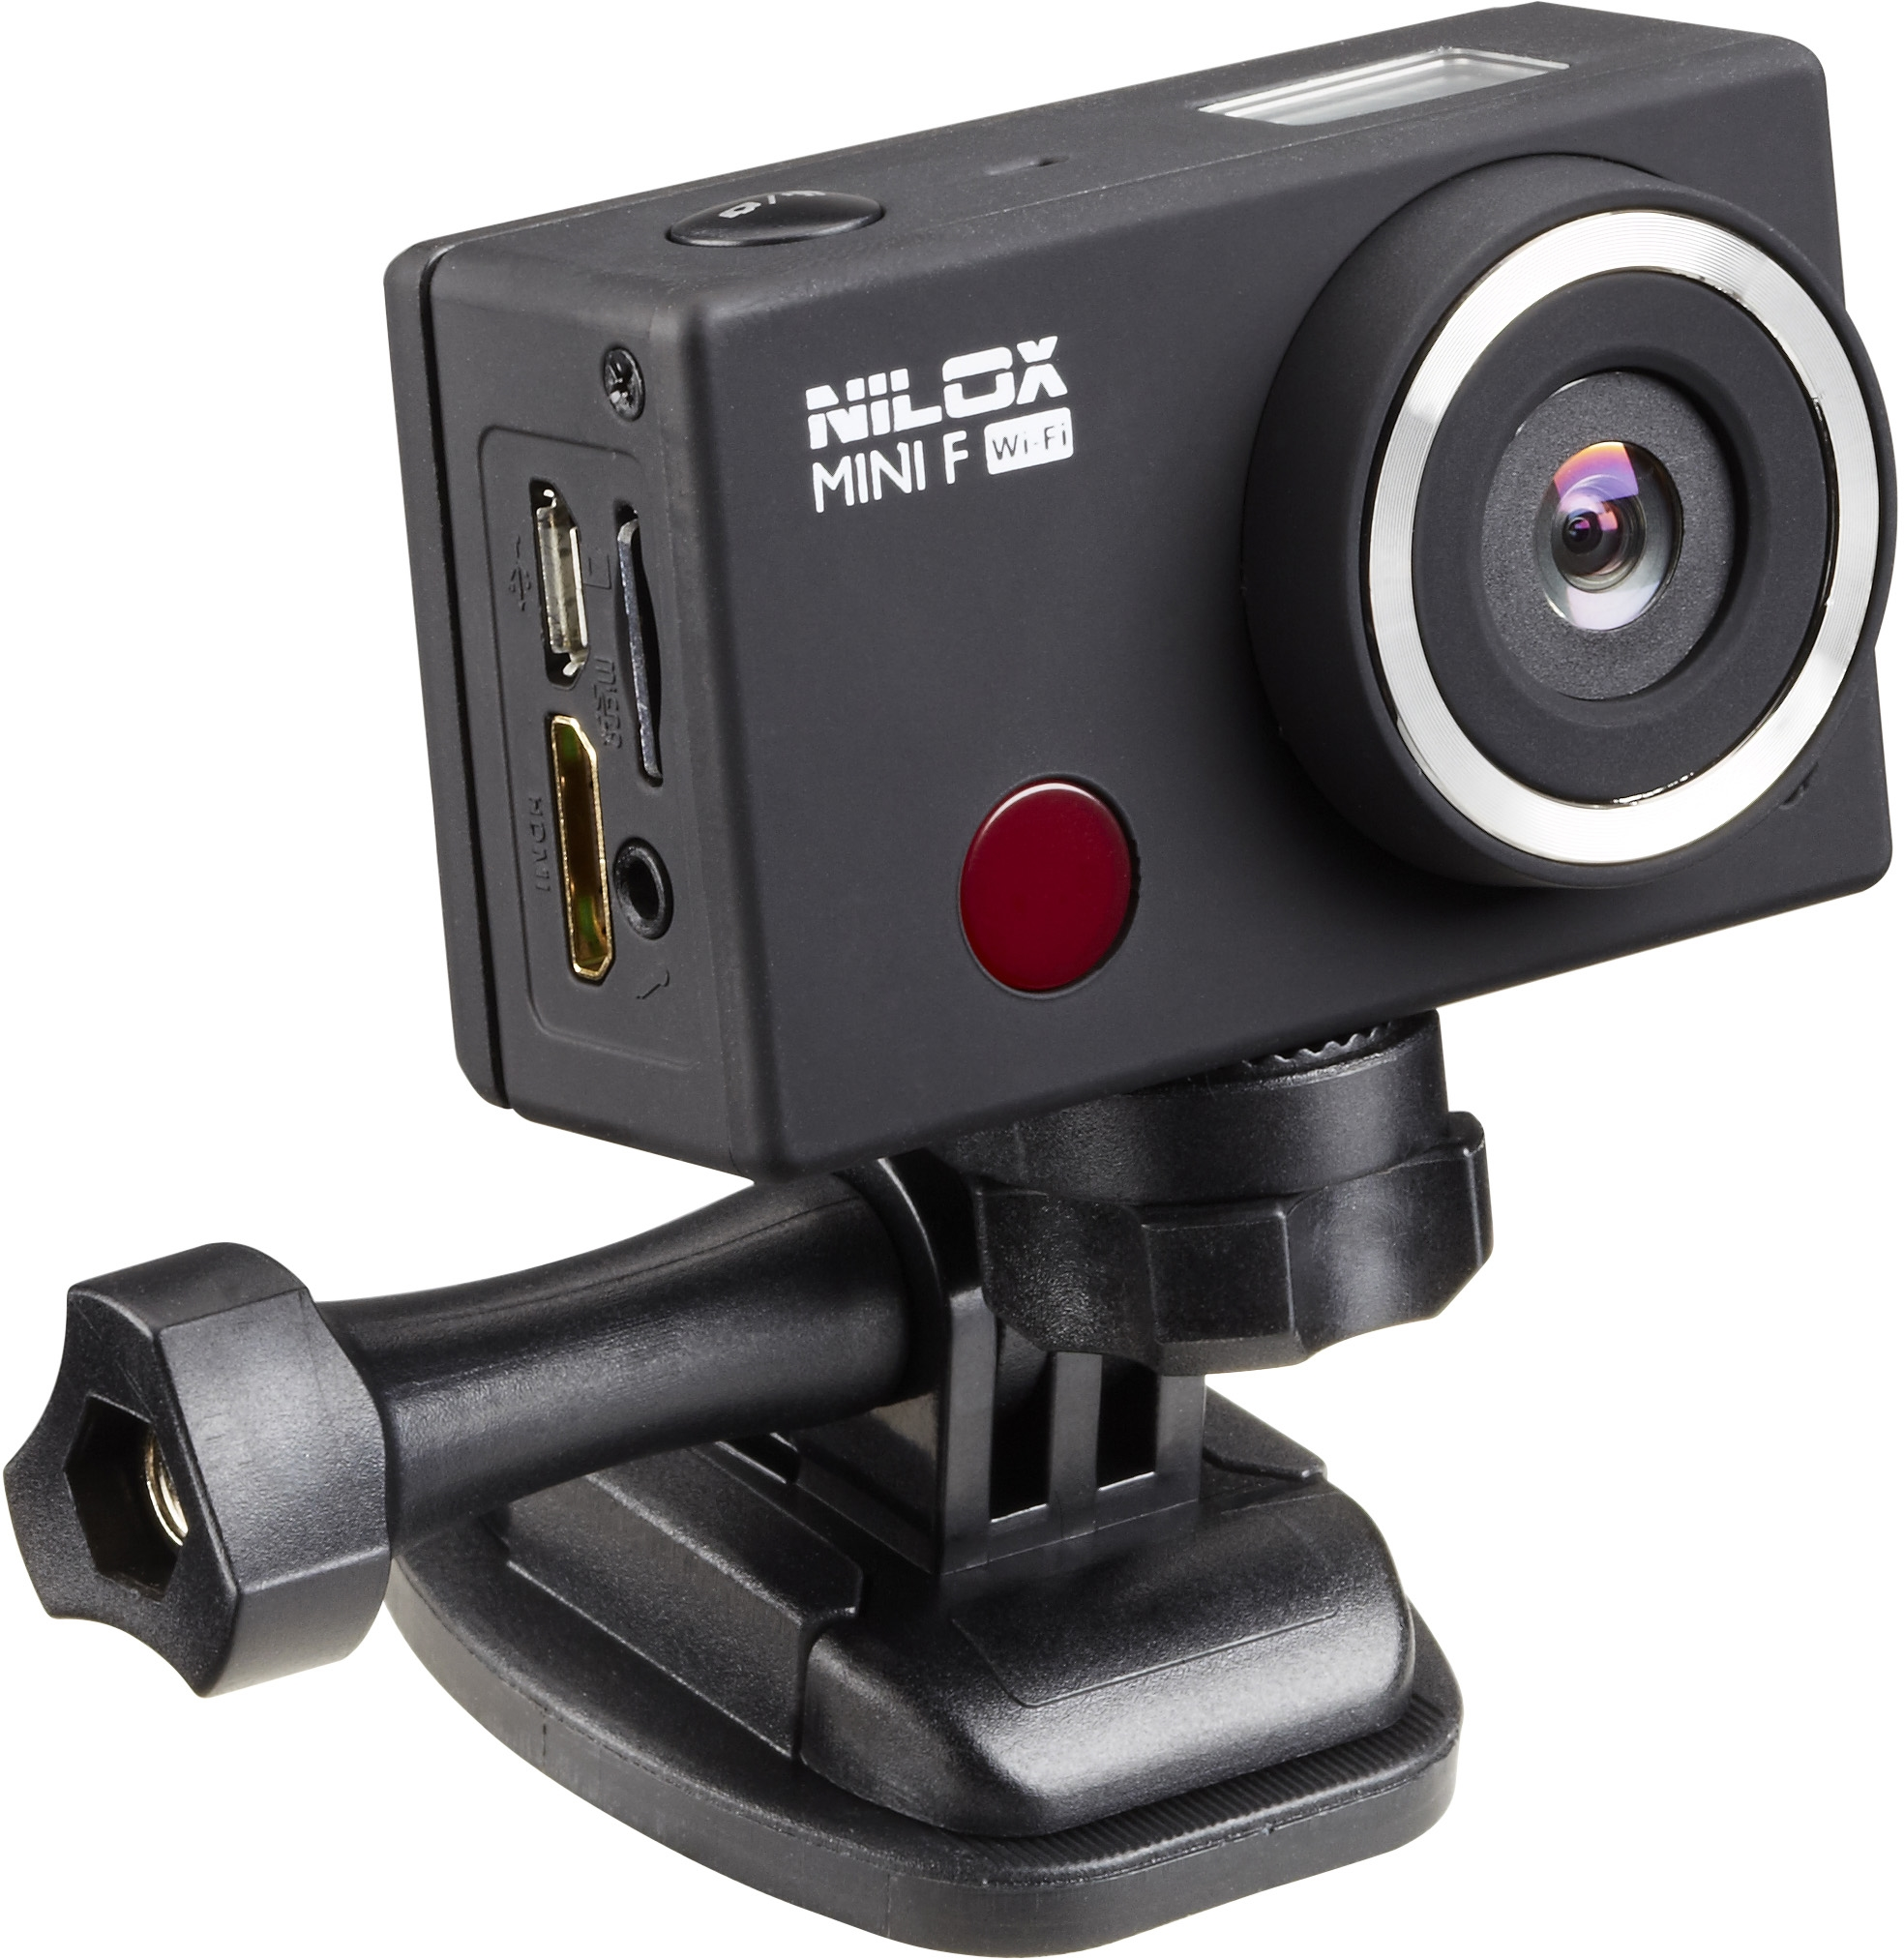 i dettagli del test sull 39 action cam nilox mini f wi fi. Black Bedroom Furniture Sets. Home Design Ideas